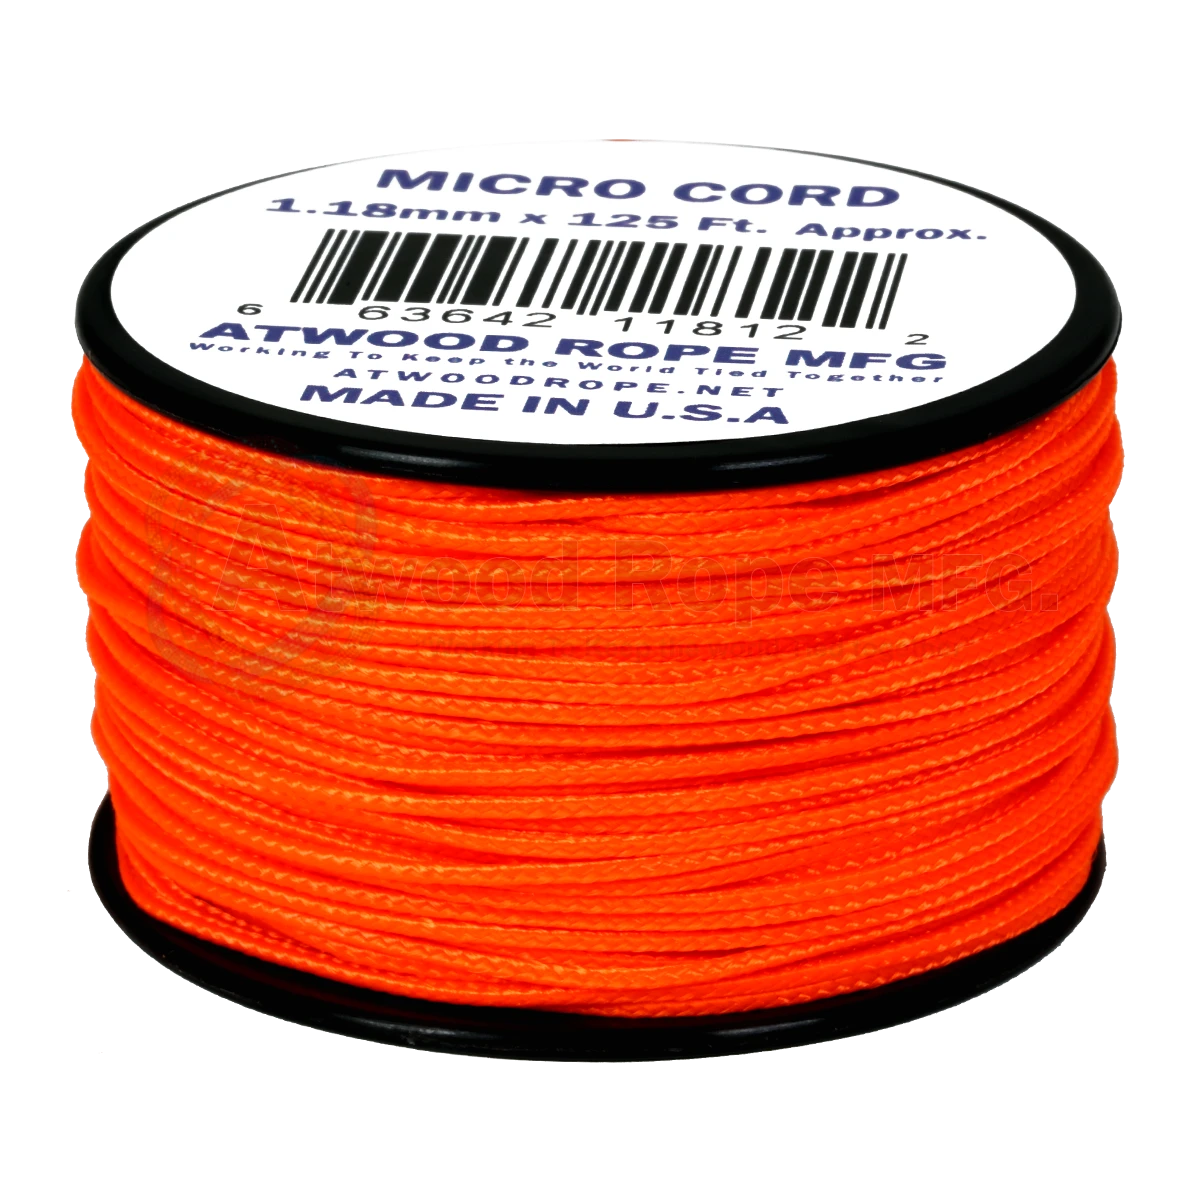 Dây Micro Cord 1.18mm – 100ft – Neon Orange